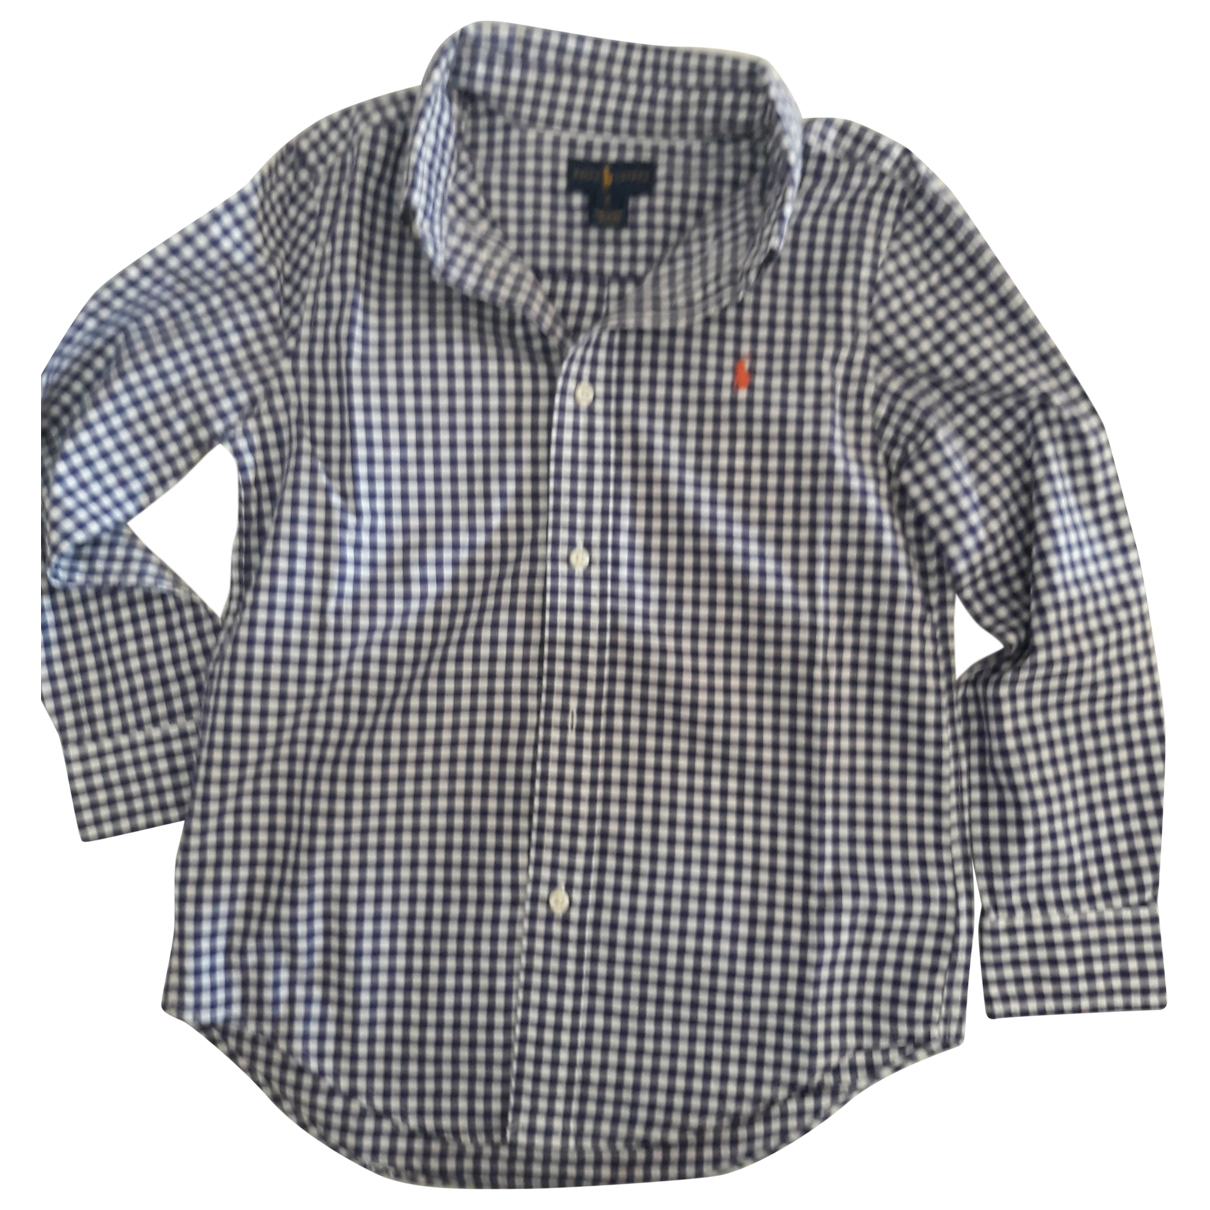 Ralph Lauren \N Blue Cotton  top for Kids 6 years - up to 114cm FR